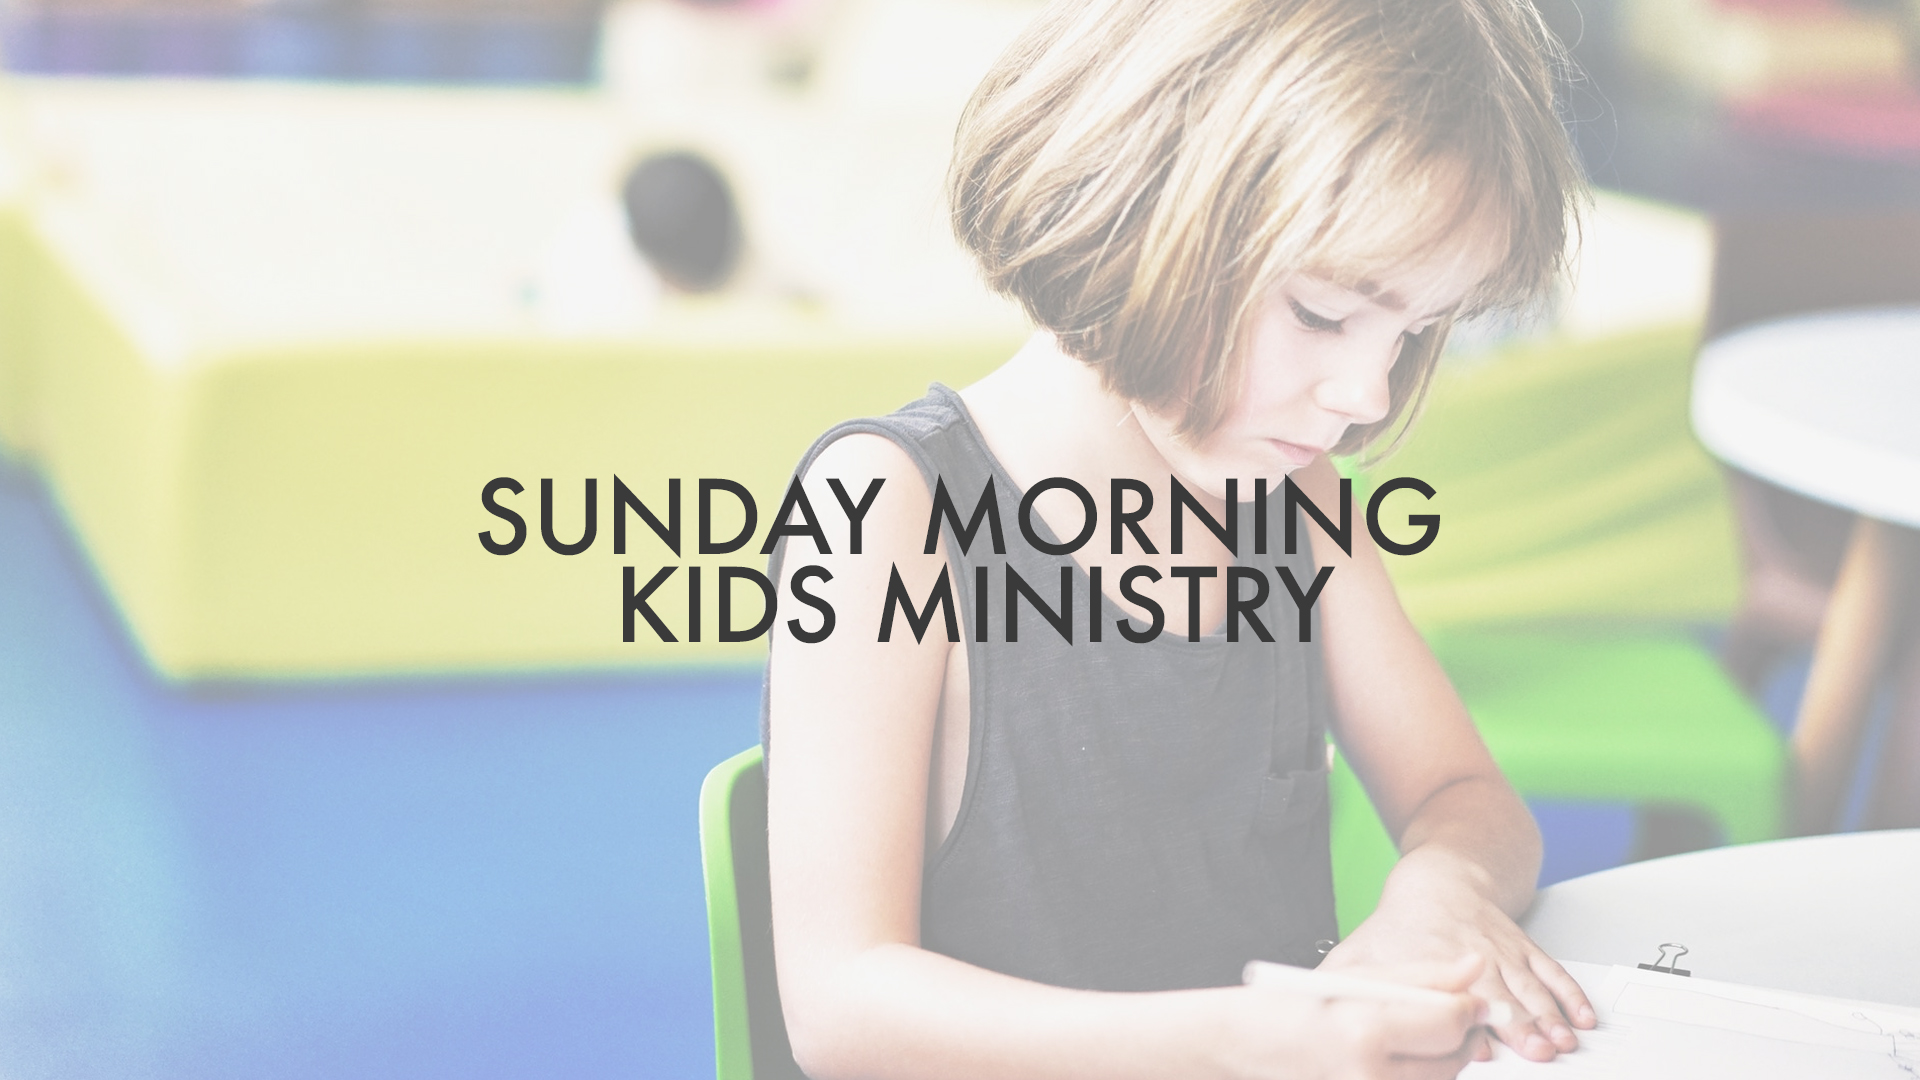 Sundays,10:00am - One Love Kids offers classes for children between preschool and 5th grade each Sunday during our 10:00am service. Drop your kids off at the gate to the left of the main building, and our dedicated volunteers will take it from there!